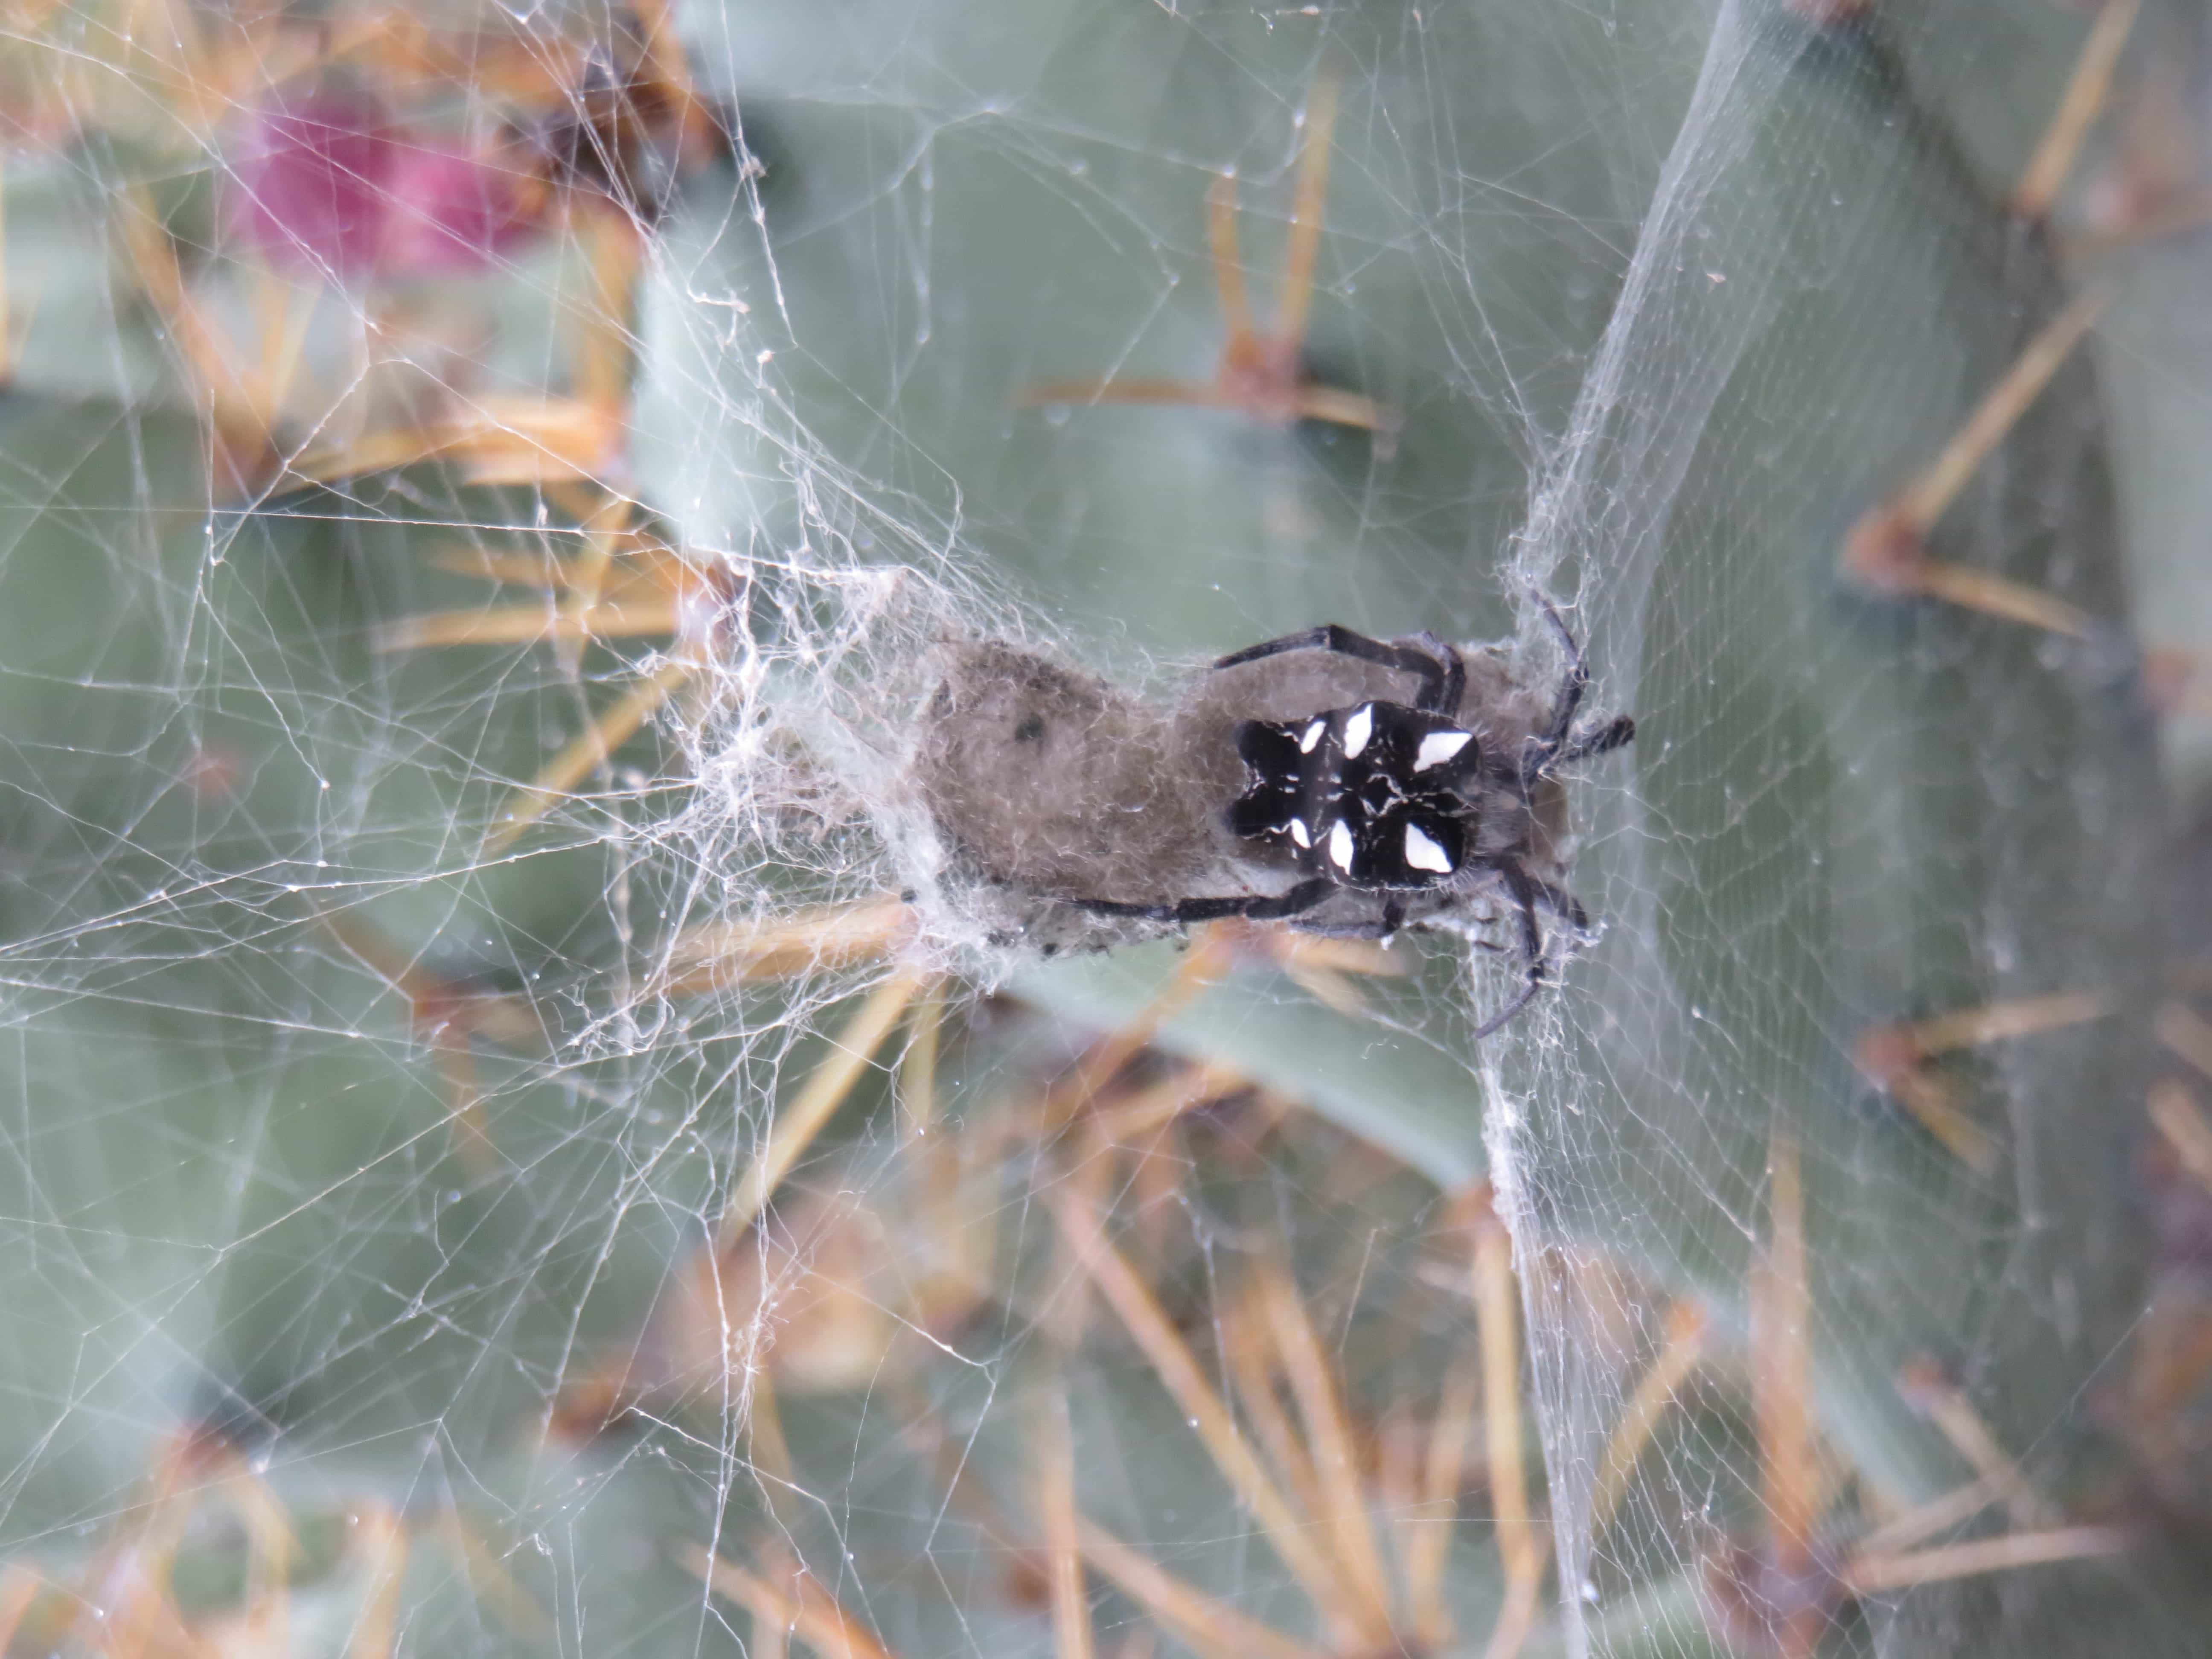 Picture of Cyrtophora citricola (Tropical Tent-web Spider) - Dorsal,Egg sacs,Webs